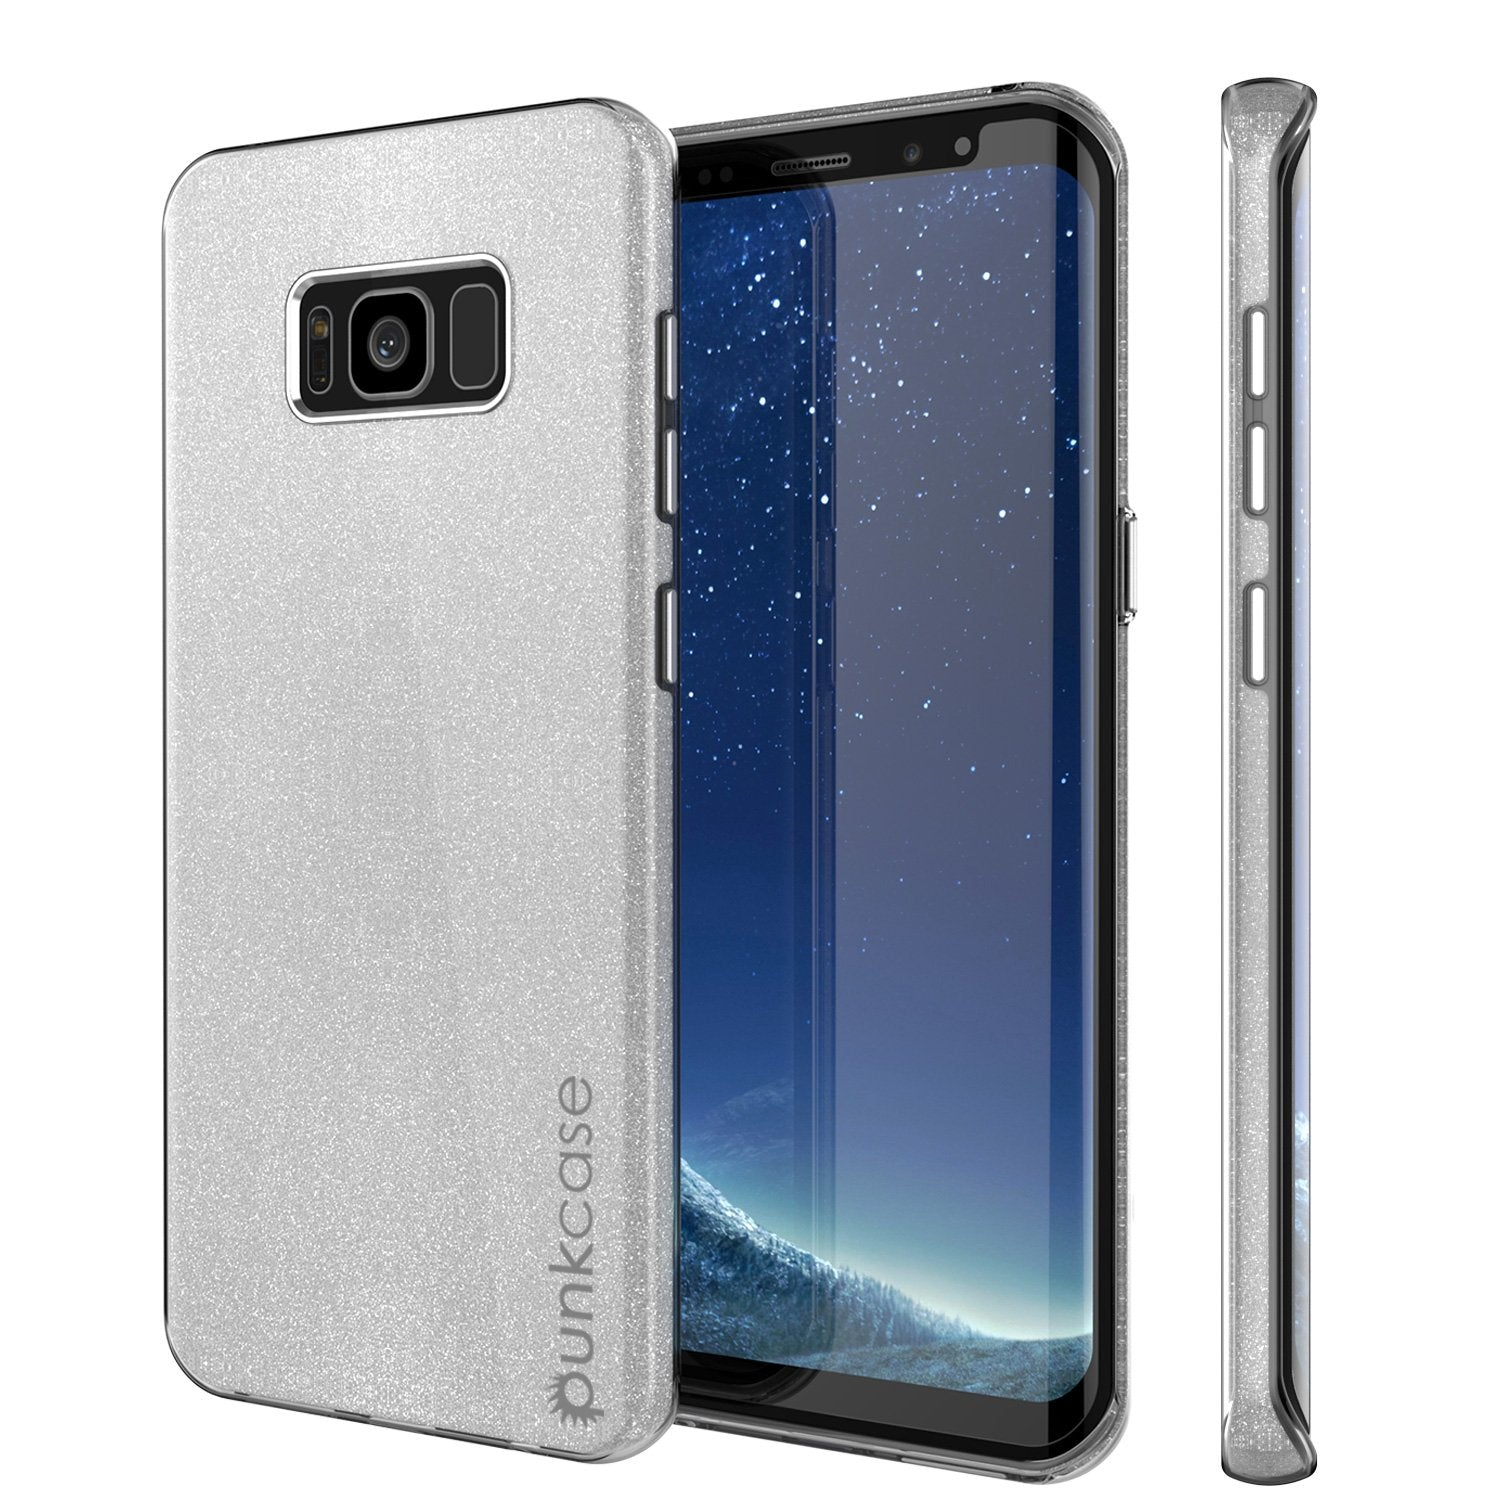 Galaxy S8 Plus Punkcase Galactic 2.0 Series Ultra Slim Case [Silver]